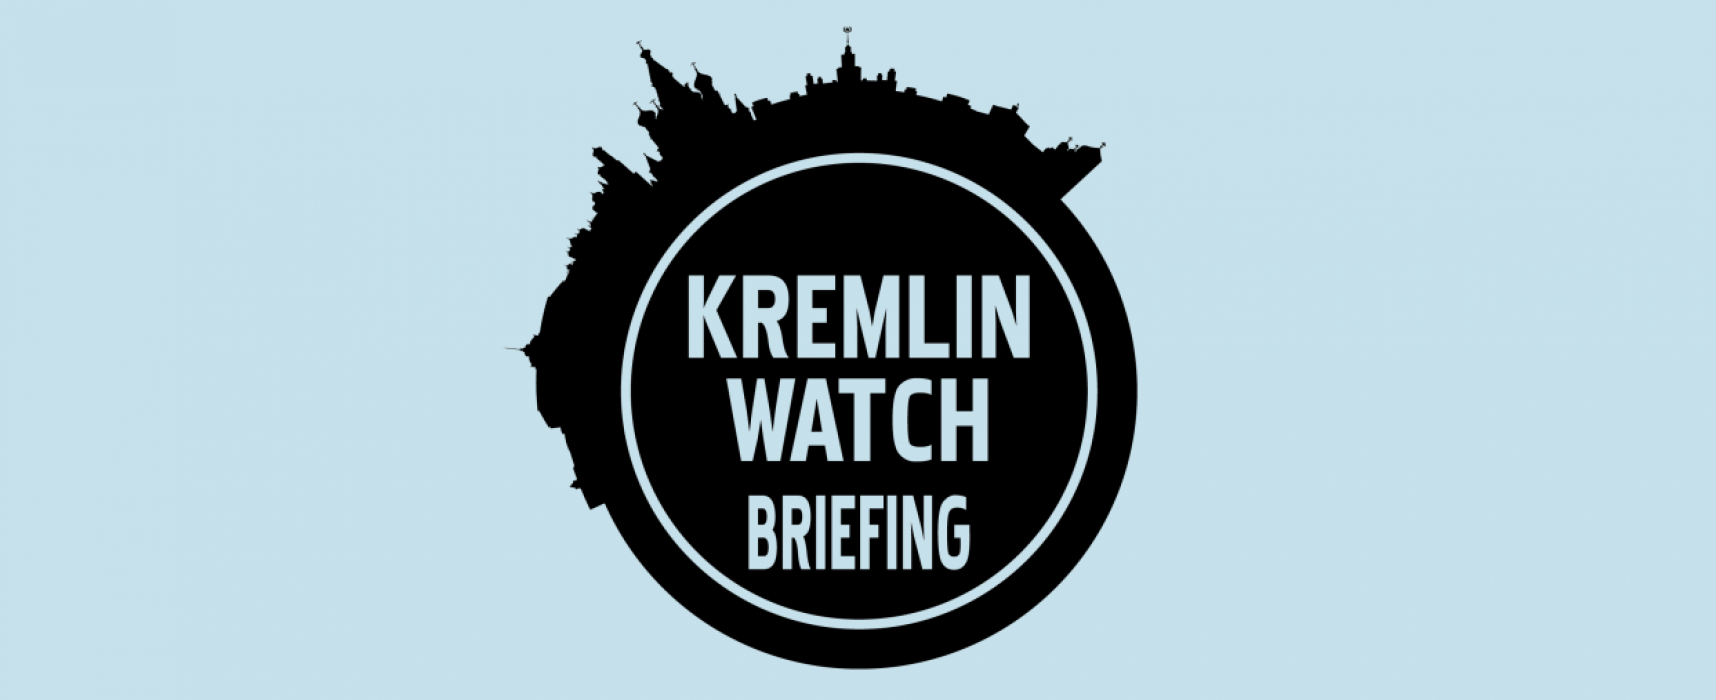 Kremlin Watch Briefing: Russian citizens protest against new limits of internet freedom